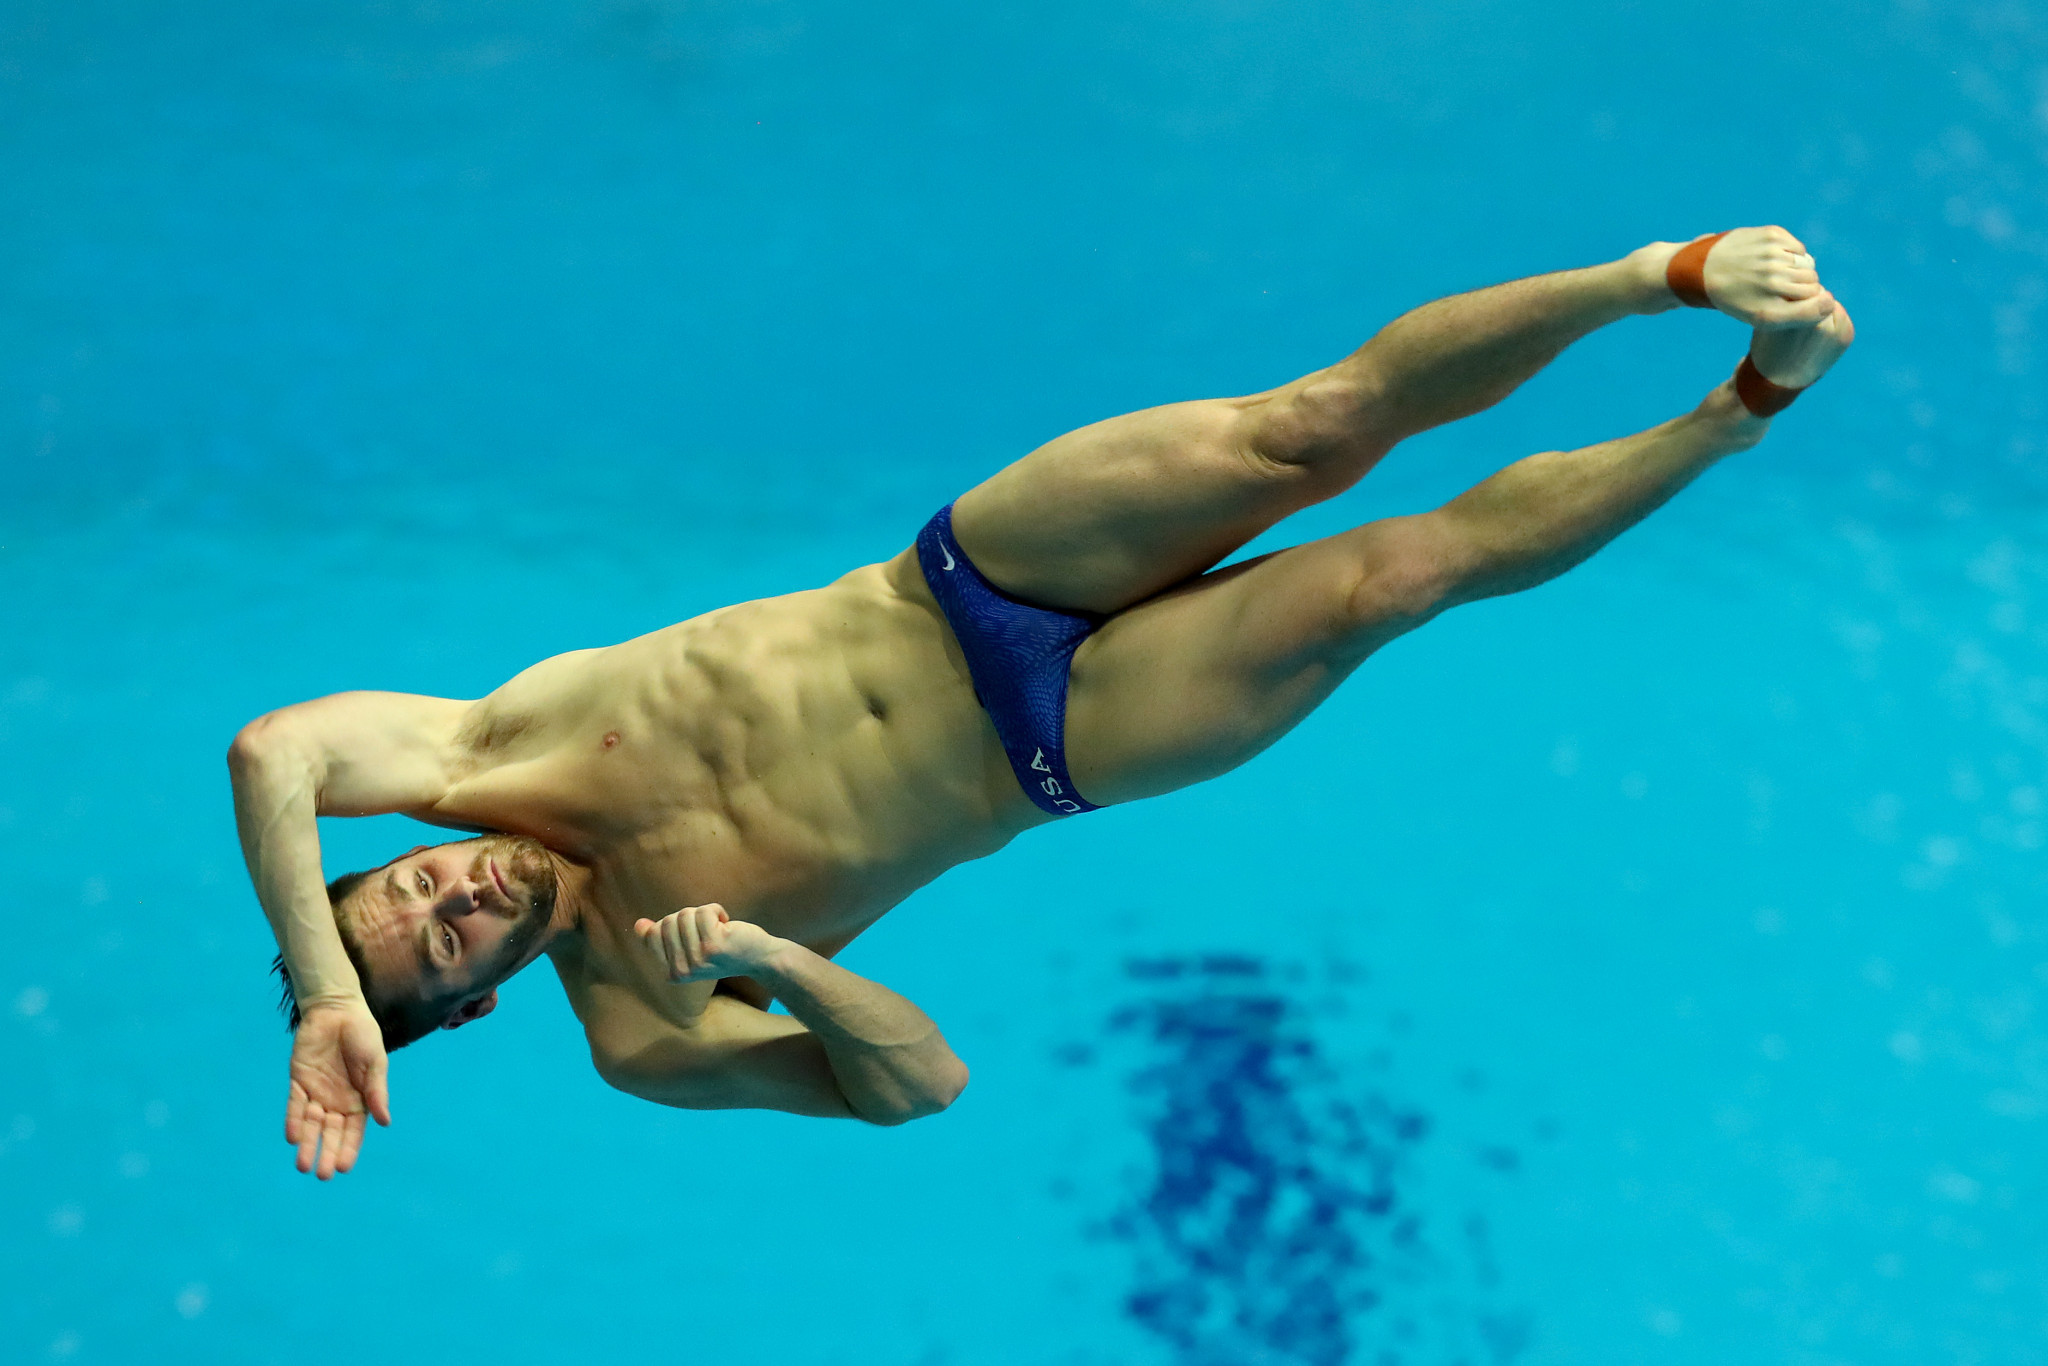 London 2012 Olympic gold medallist David Boudia is just one American diver who will benefit from USA Diving moving to new headquarters ©Getty Images